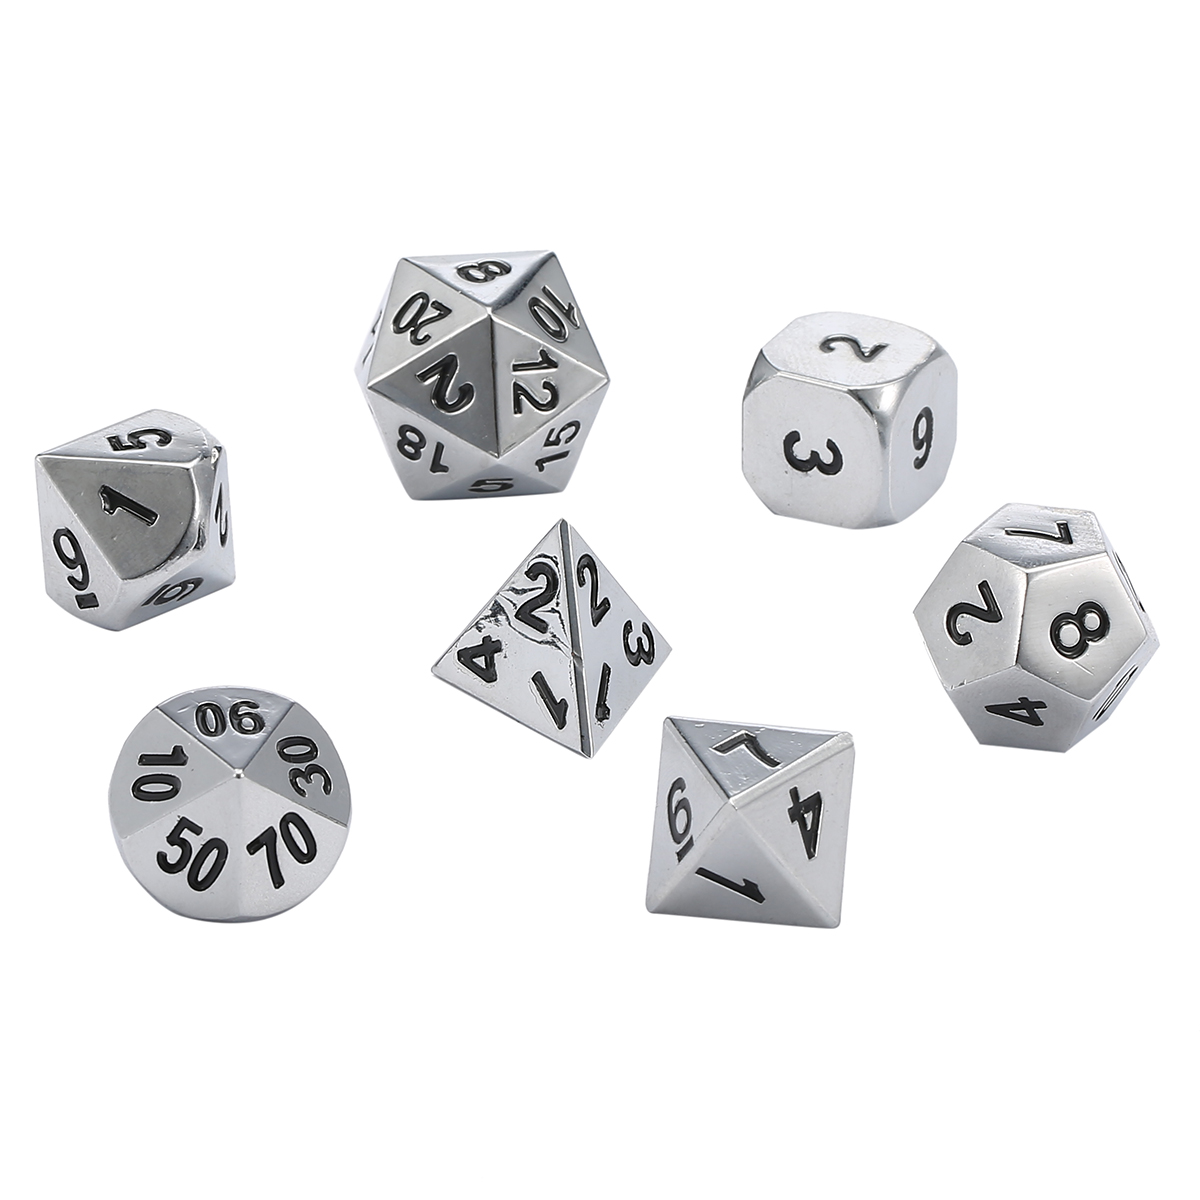 Antique Metal Polyhedral Dice w Bag DND RPG MTG Role Playing Board Game  Dice 7pcs Set